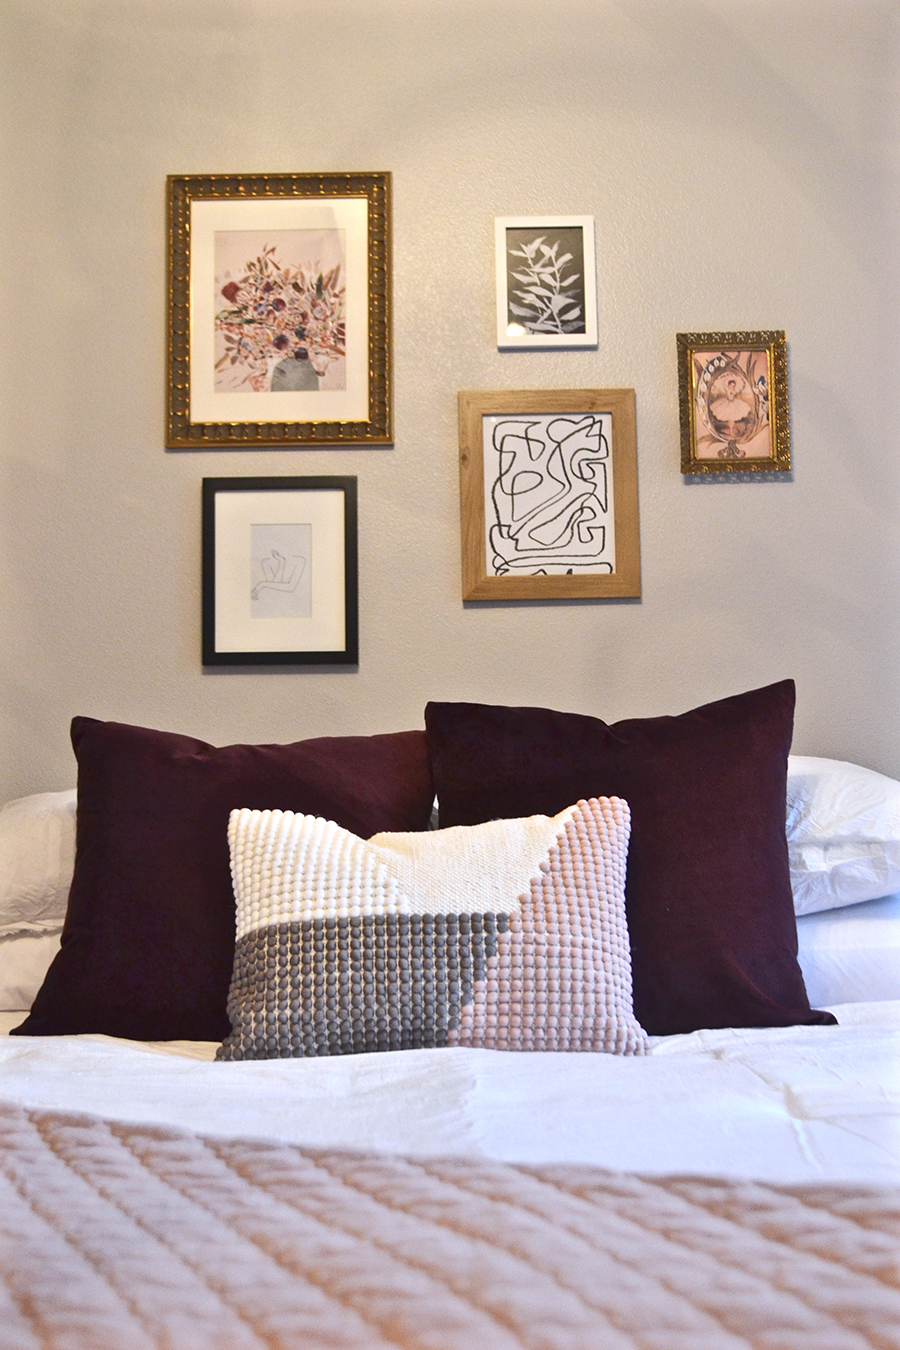 eclectic parisian bedroom, black and white, room design, gallery wall, blush pink, milennial pink, thrifted bedroom, etsy art, hm, target, world market, chalkboard art, vignette, bedroom reveal